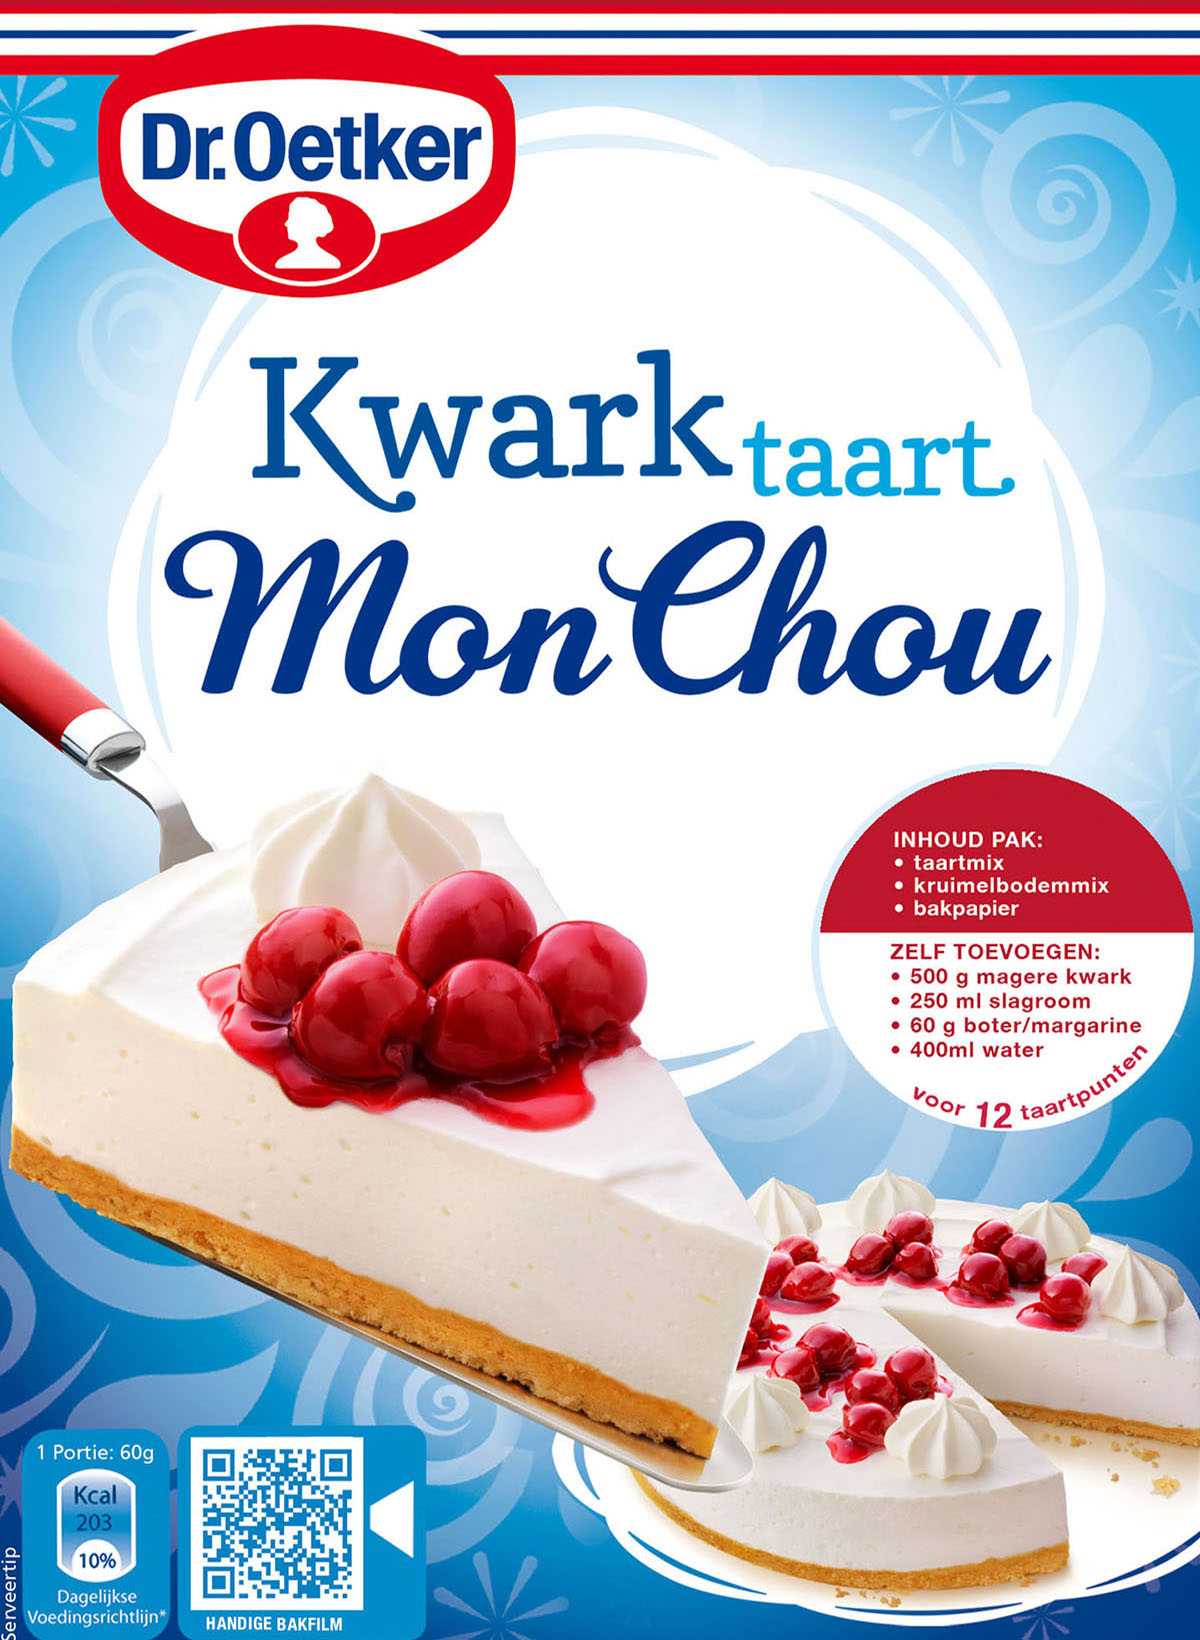 Packaging photography of Dr.Oetker's MonChou made by Studio_m Photography Amsterdam